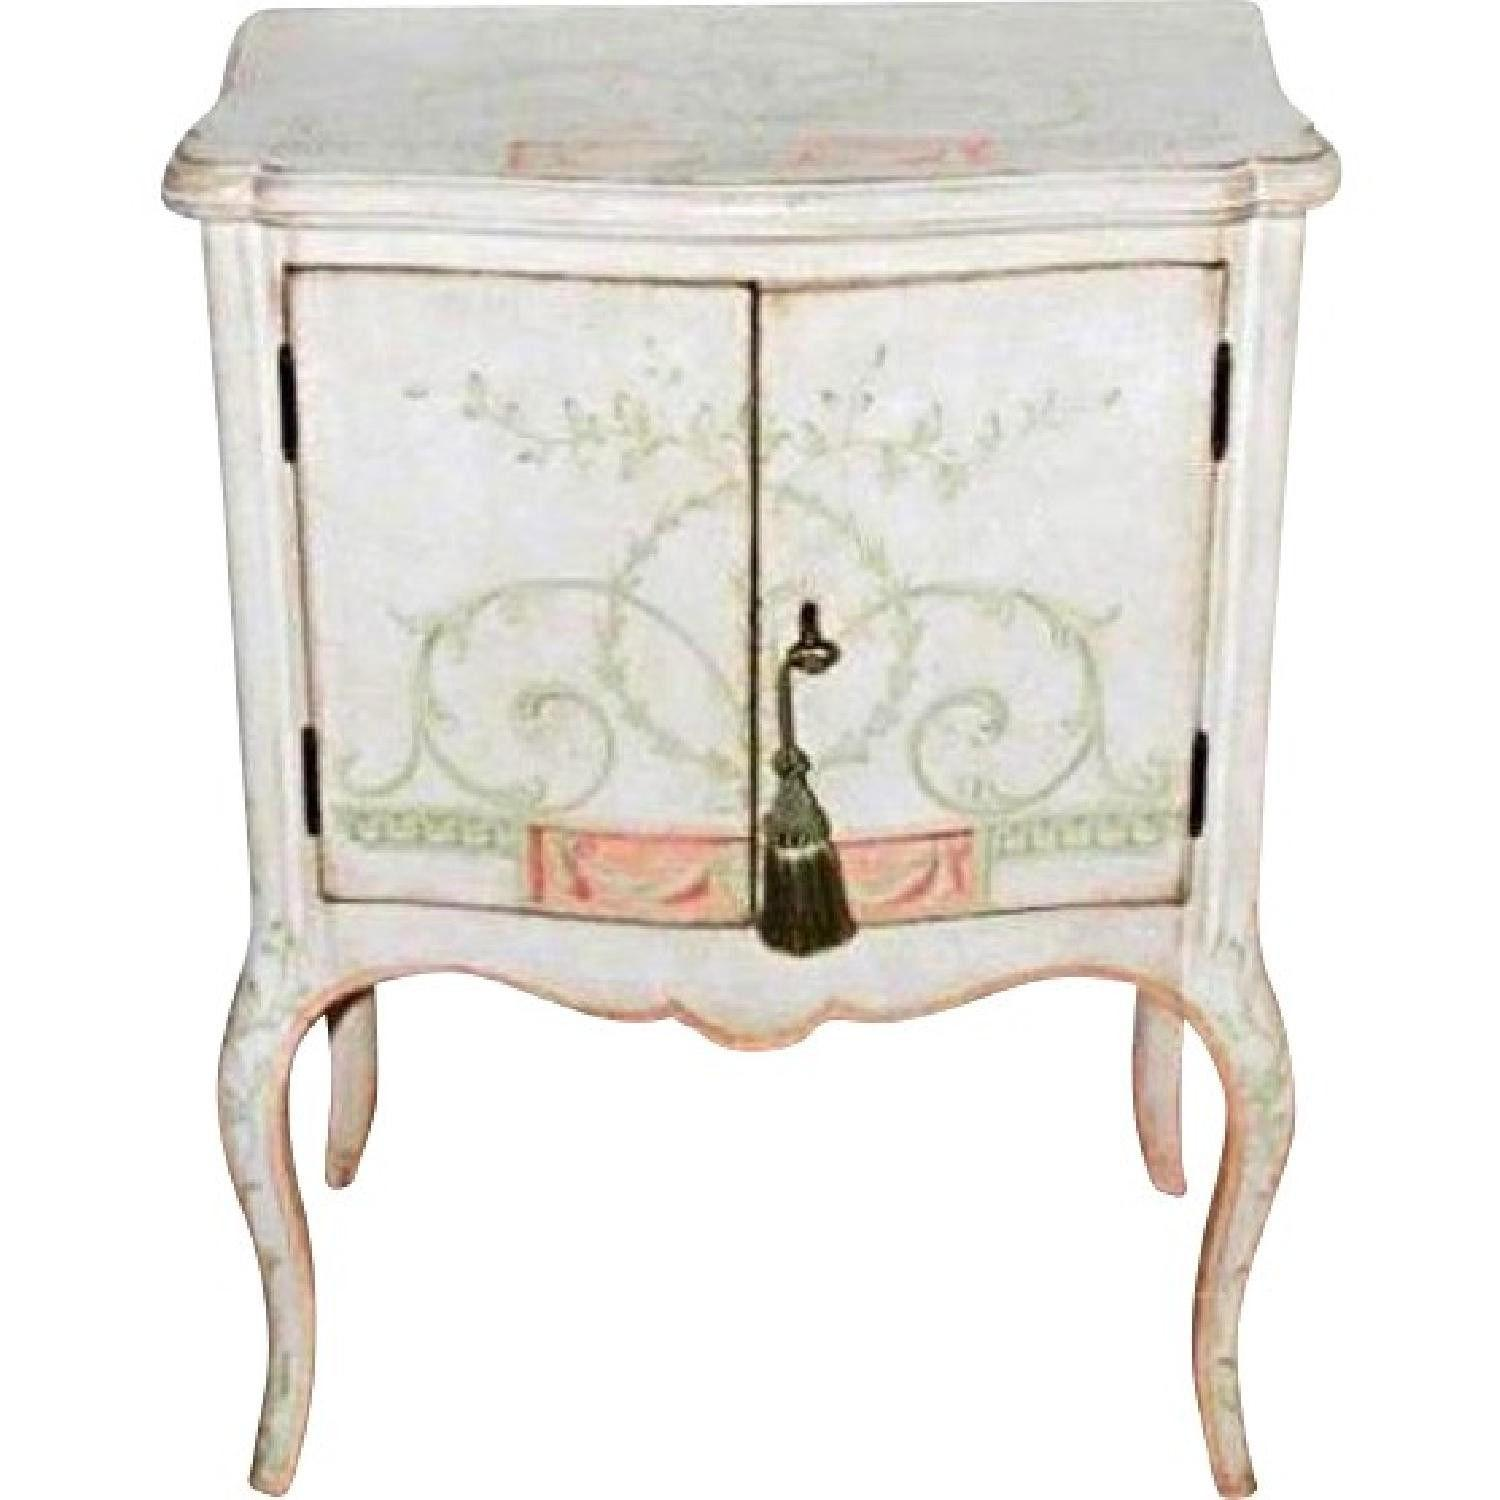 Custom Handpainted White Venetian Side Cabinet/Nightstand